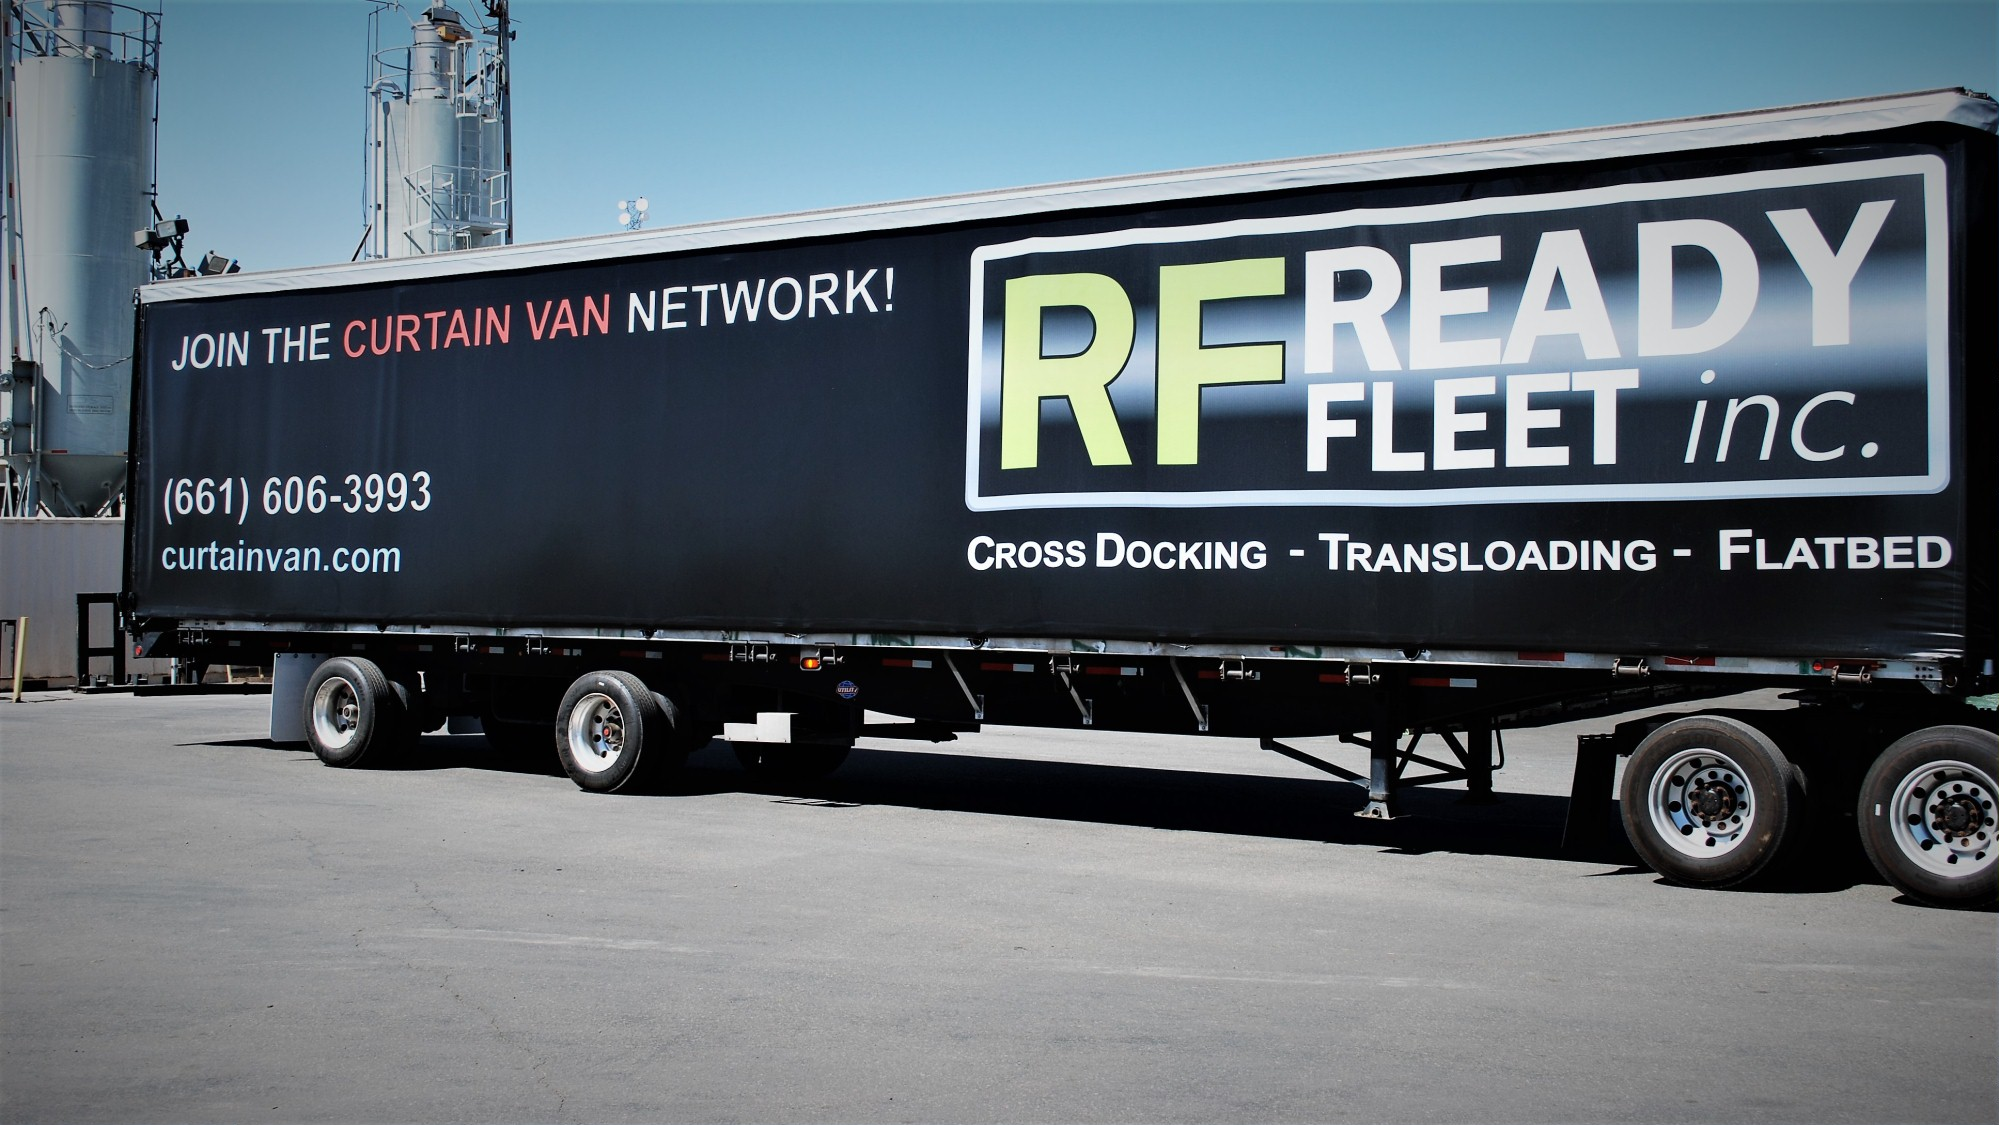 Exceptional Curtain Van Trailer California Ready Fleet